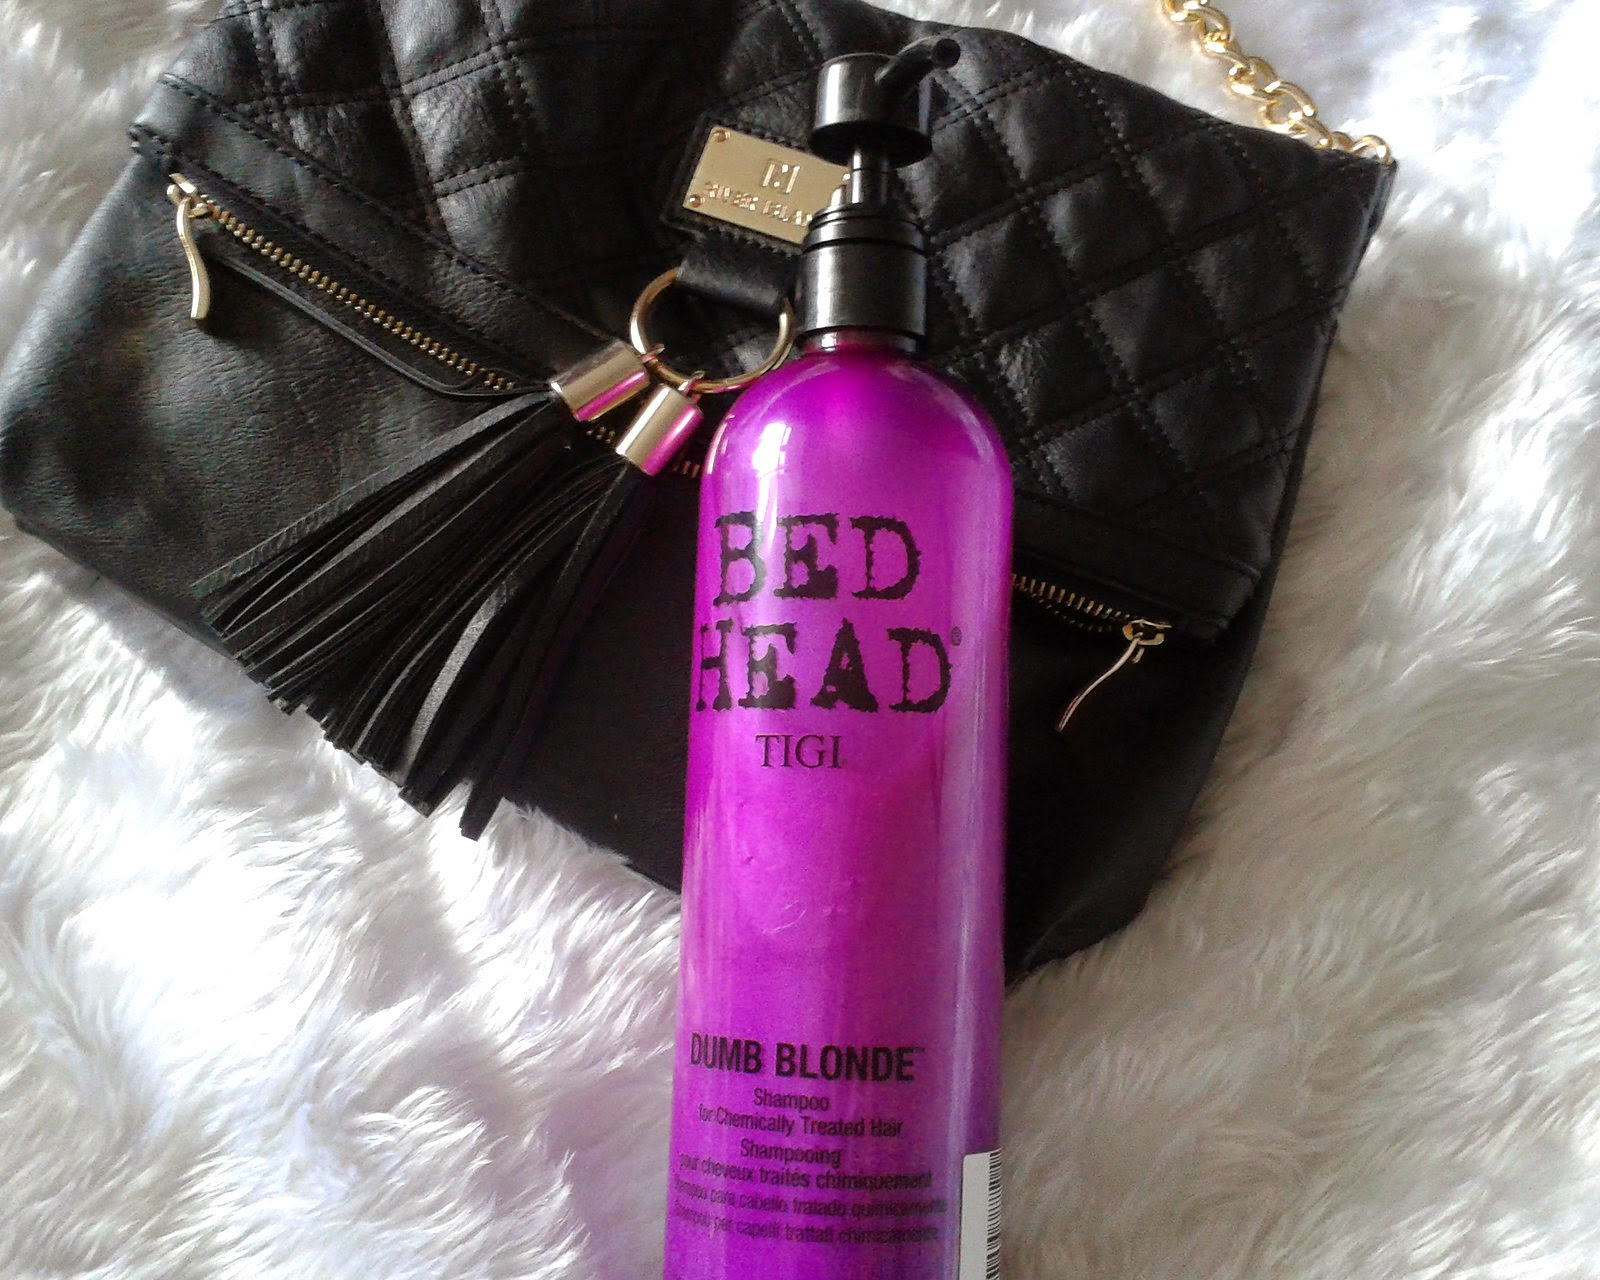 Dumb blonde shampoo and conditioner 14